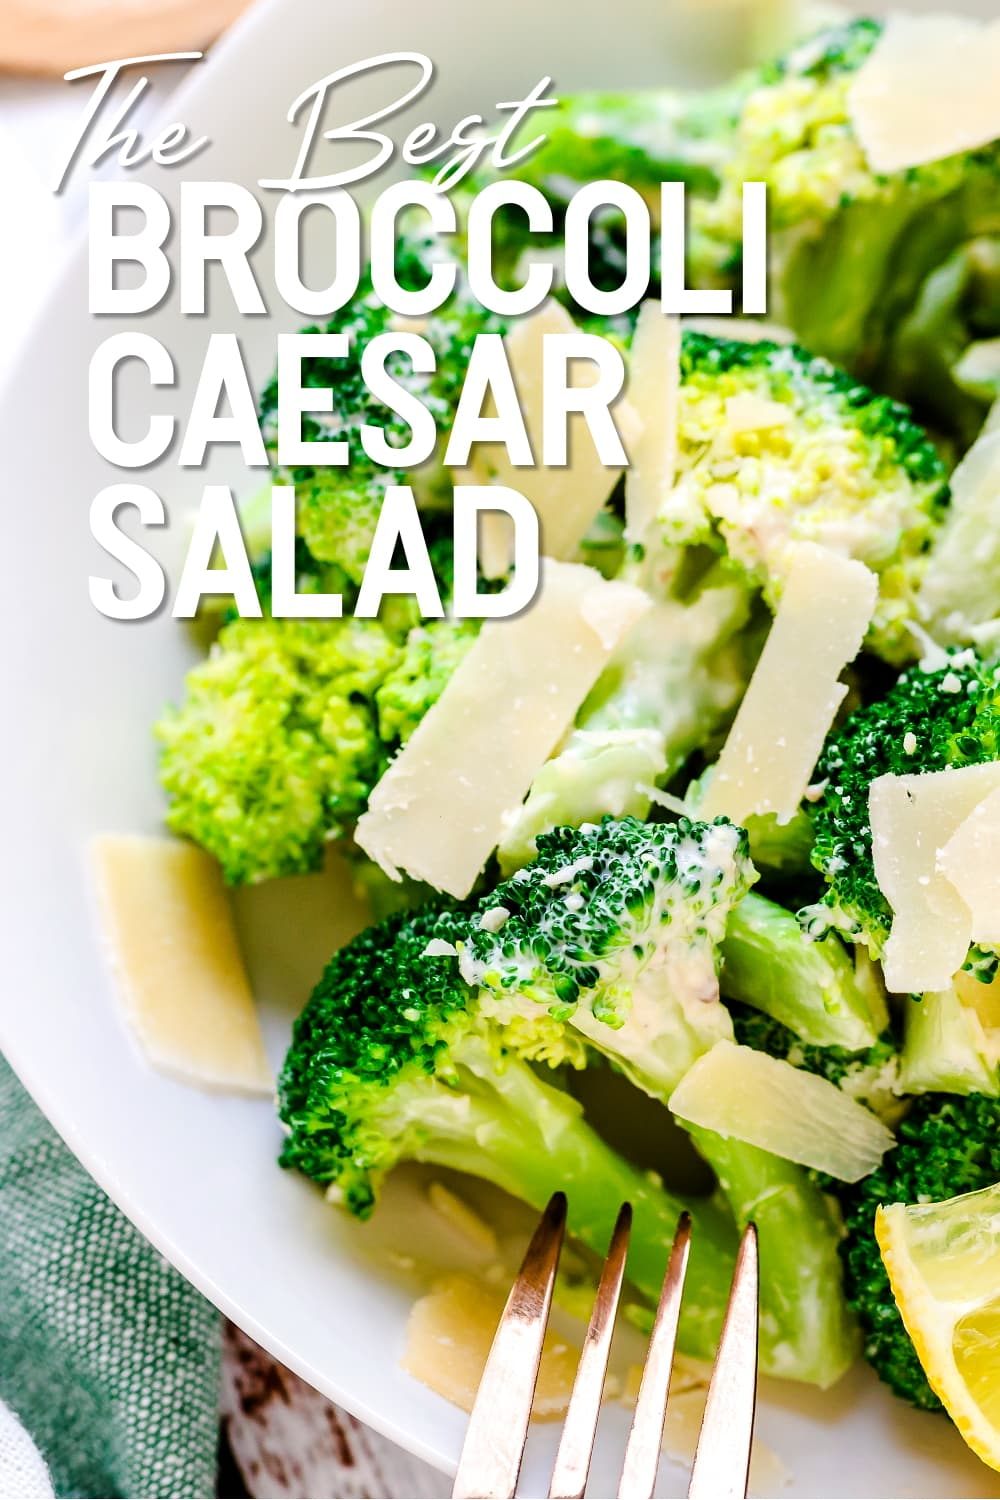 Broccoli Caesar Salad served in a bowl with fork